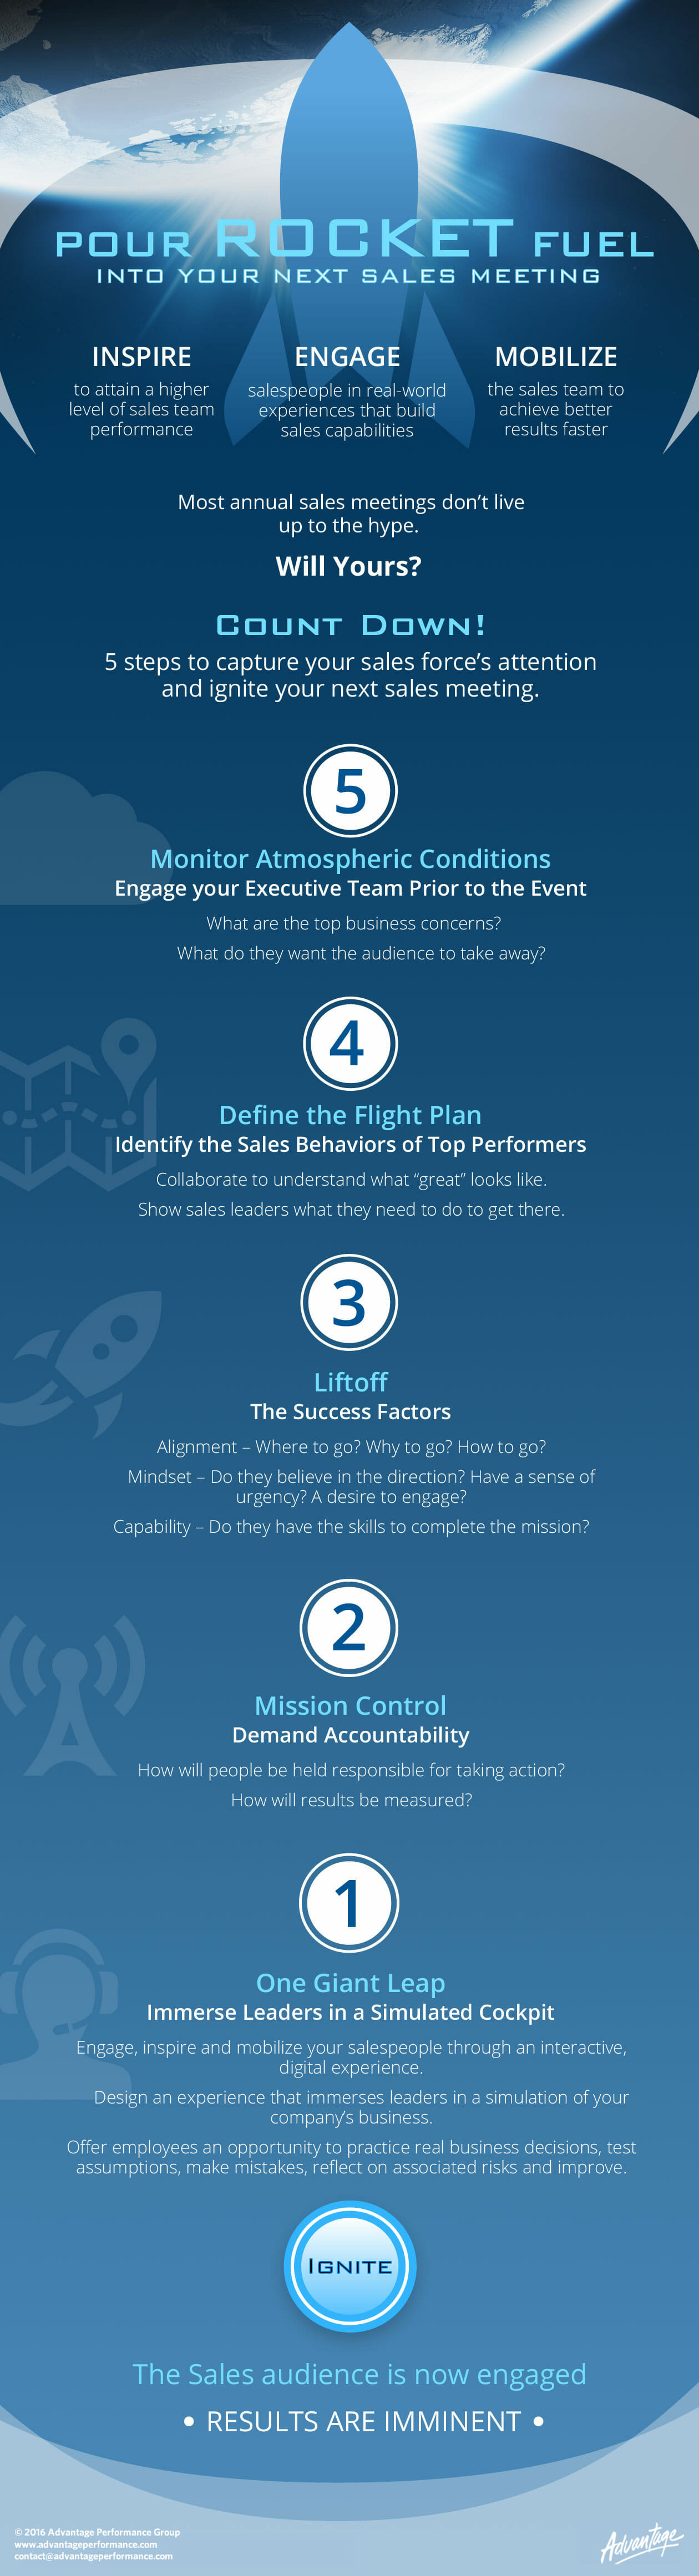 [Infographic] - Pour rocket fuel into your next sales meeting with these 5 steps